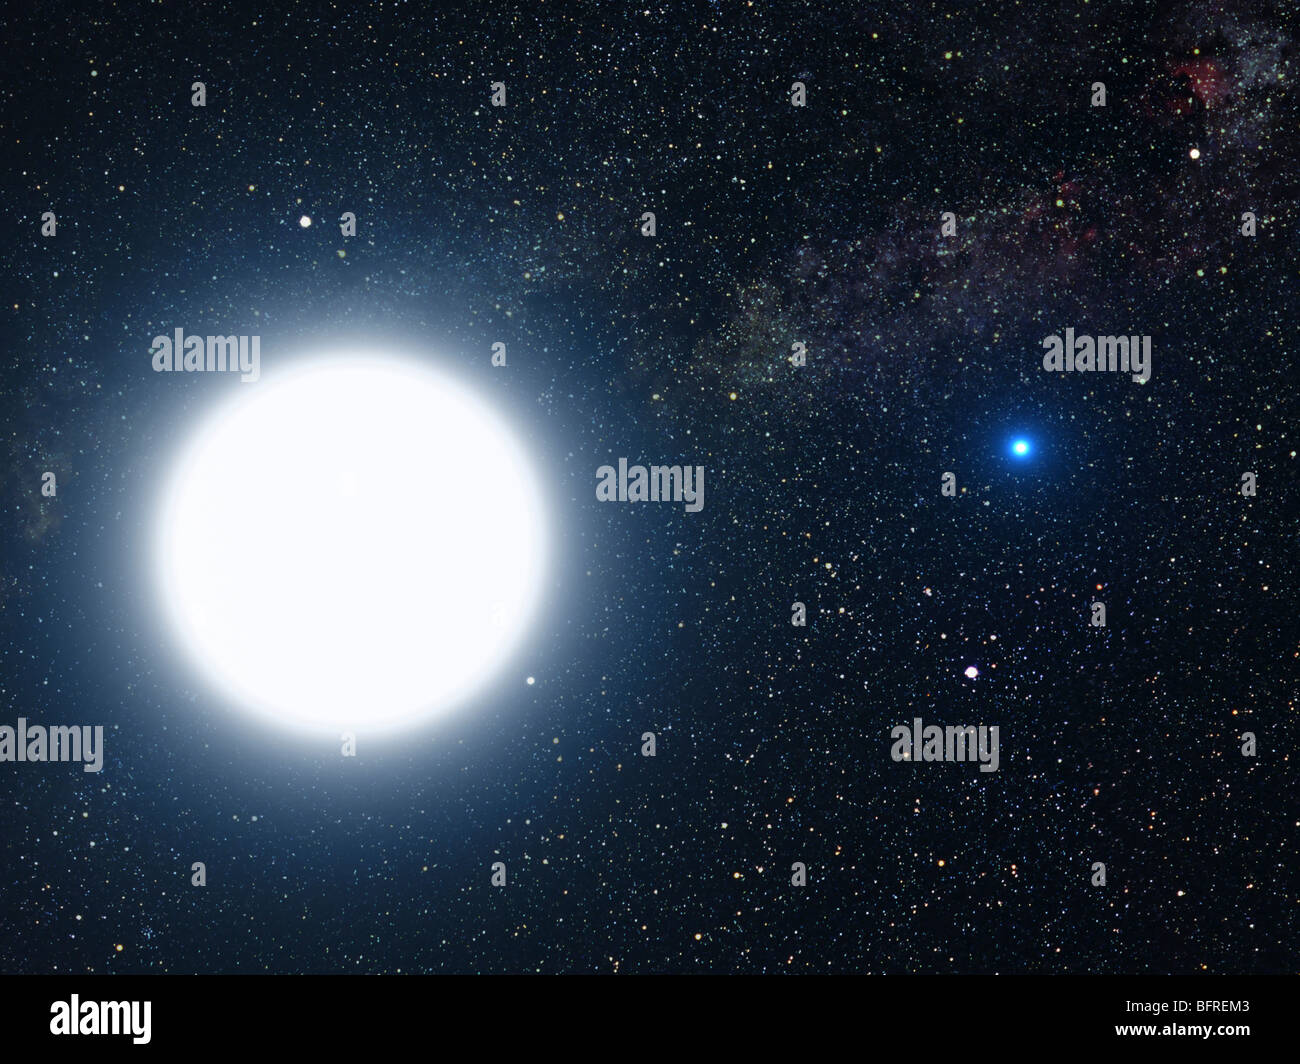 Artist's concept showing the binary star system of Sirius A and Sirius B. - Stock Image